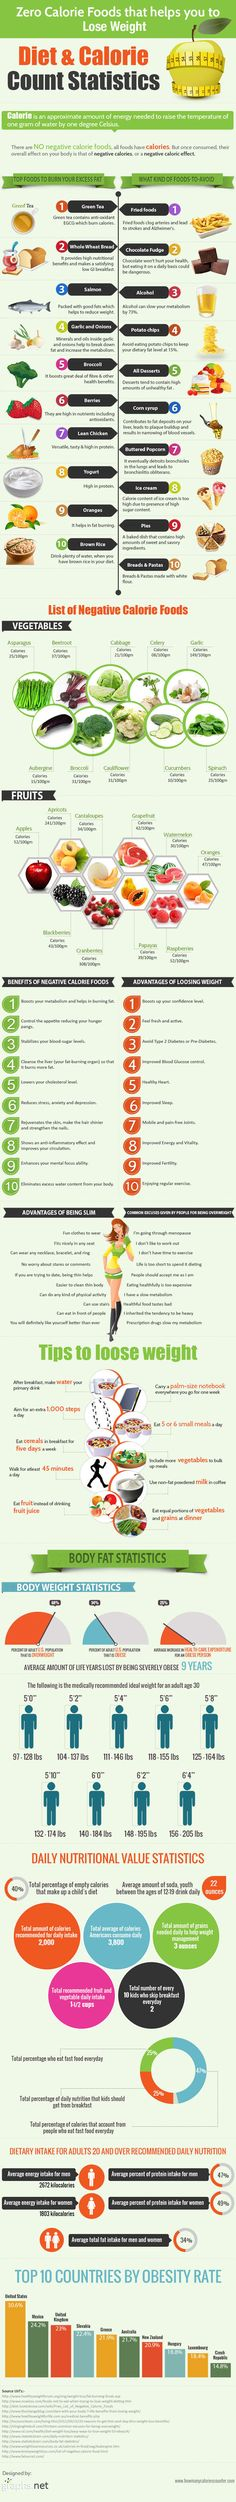 How to slim down easilyThe technique for continual weight loss is to ditch the foods that are packed with calories but don't make you feel full (like candy) and replace them with foods that fill you up without being loaded with calories (like vegetables).